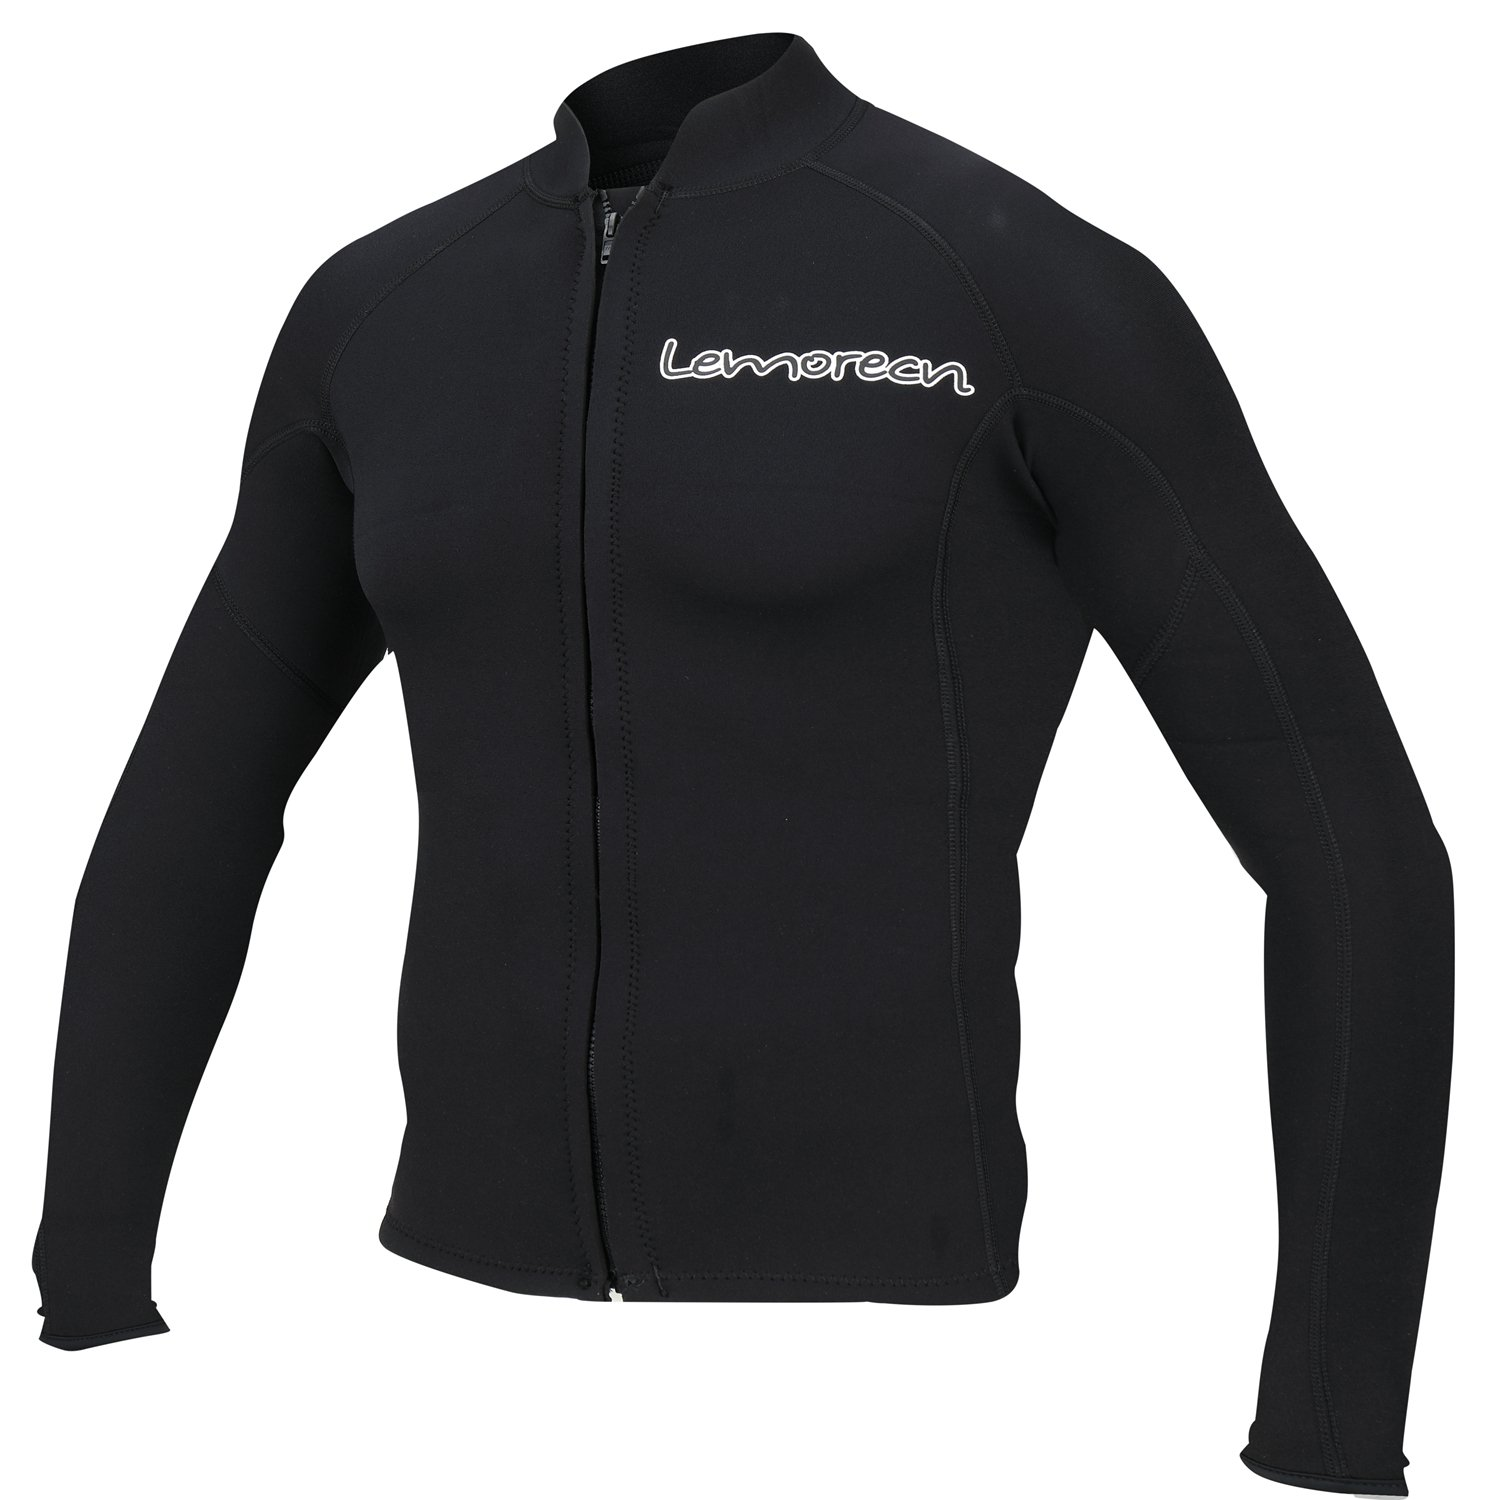 Lemorecn Men's 2mm Wetsuits Jacket Long Sleeve Neoprene Wetsuits Top(2021blackL) by Lemorecn